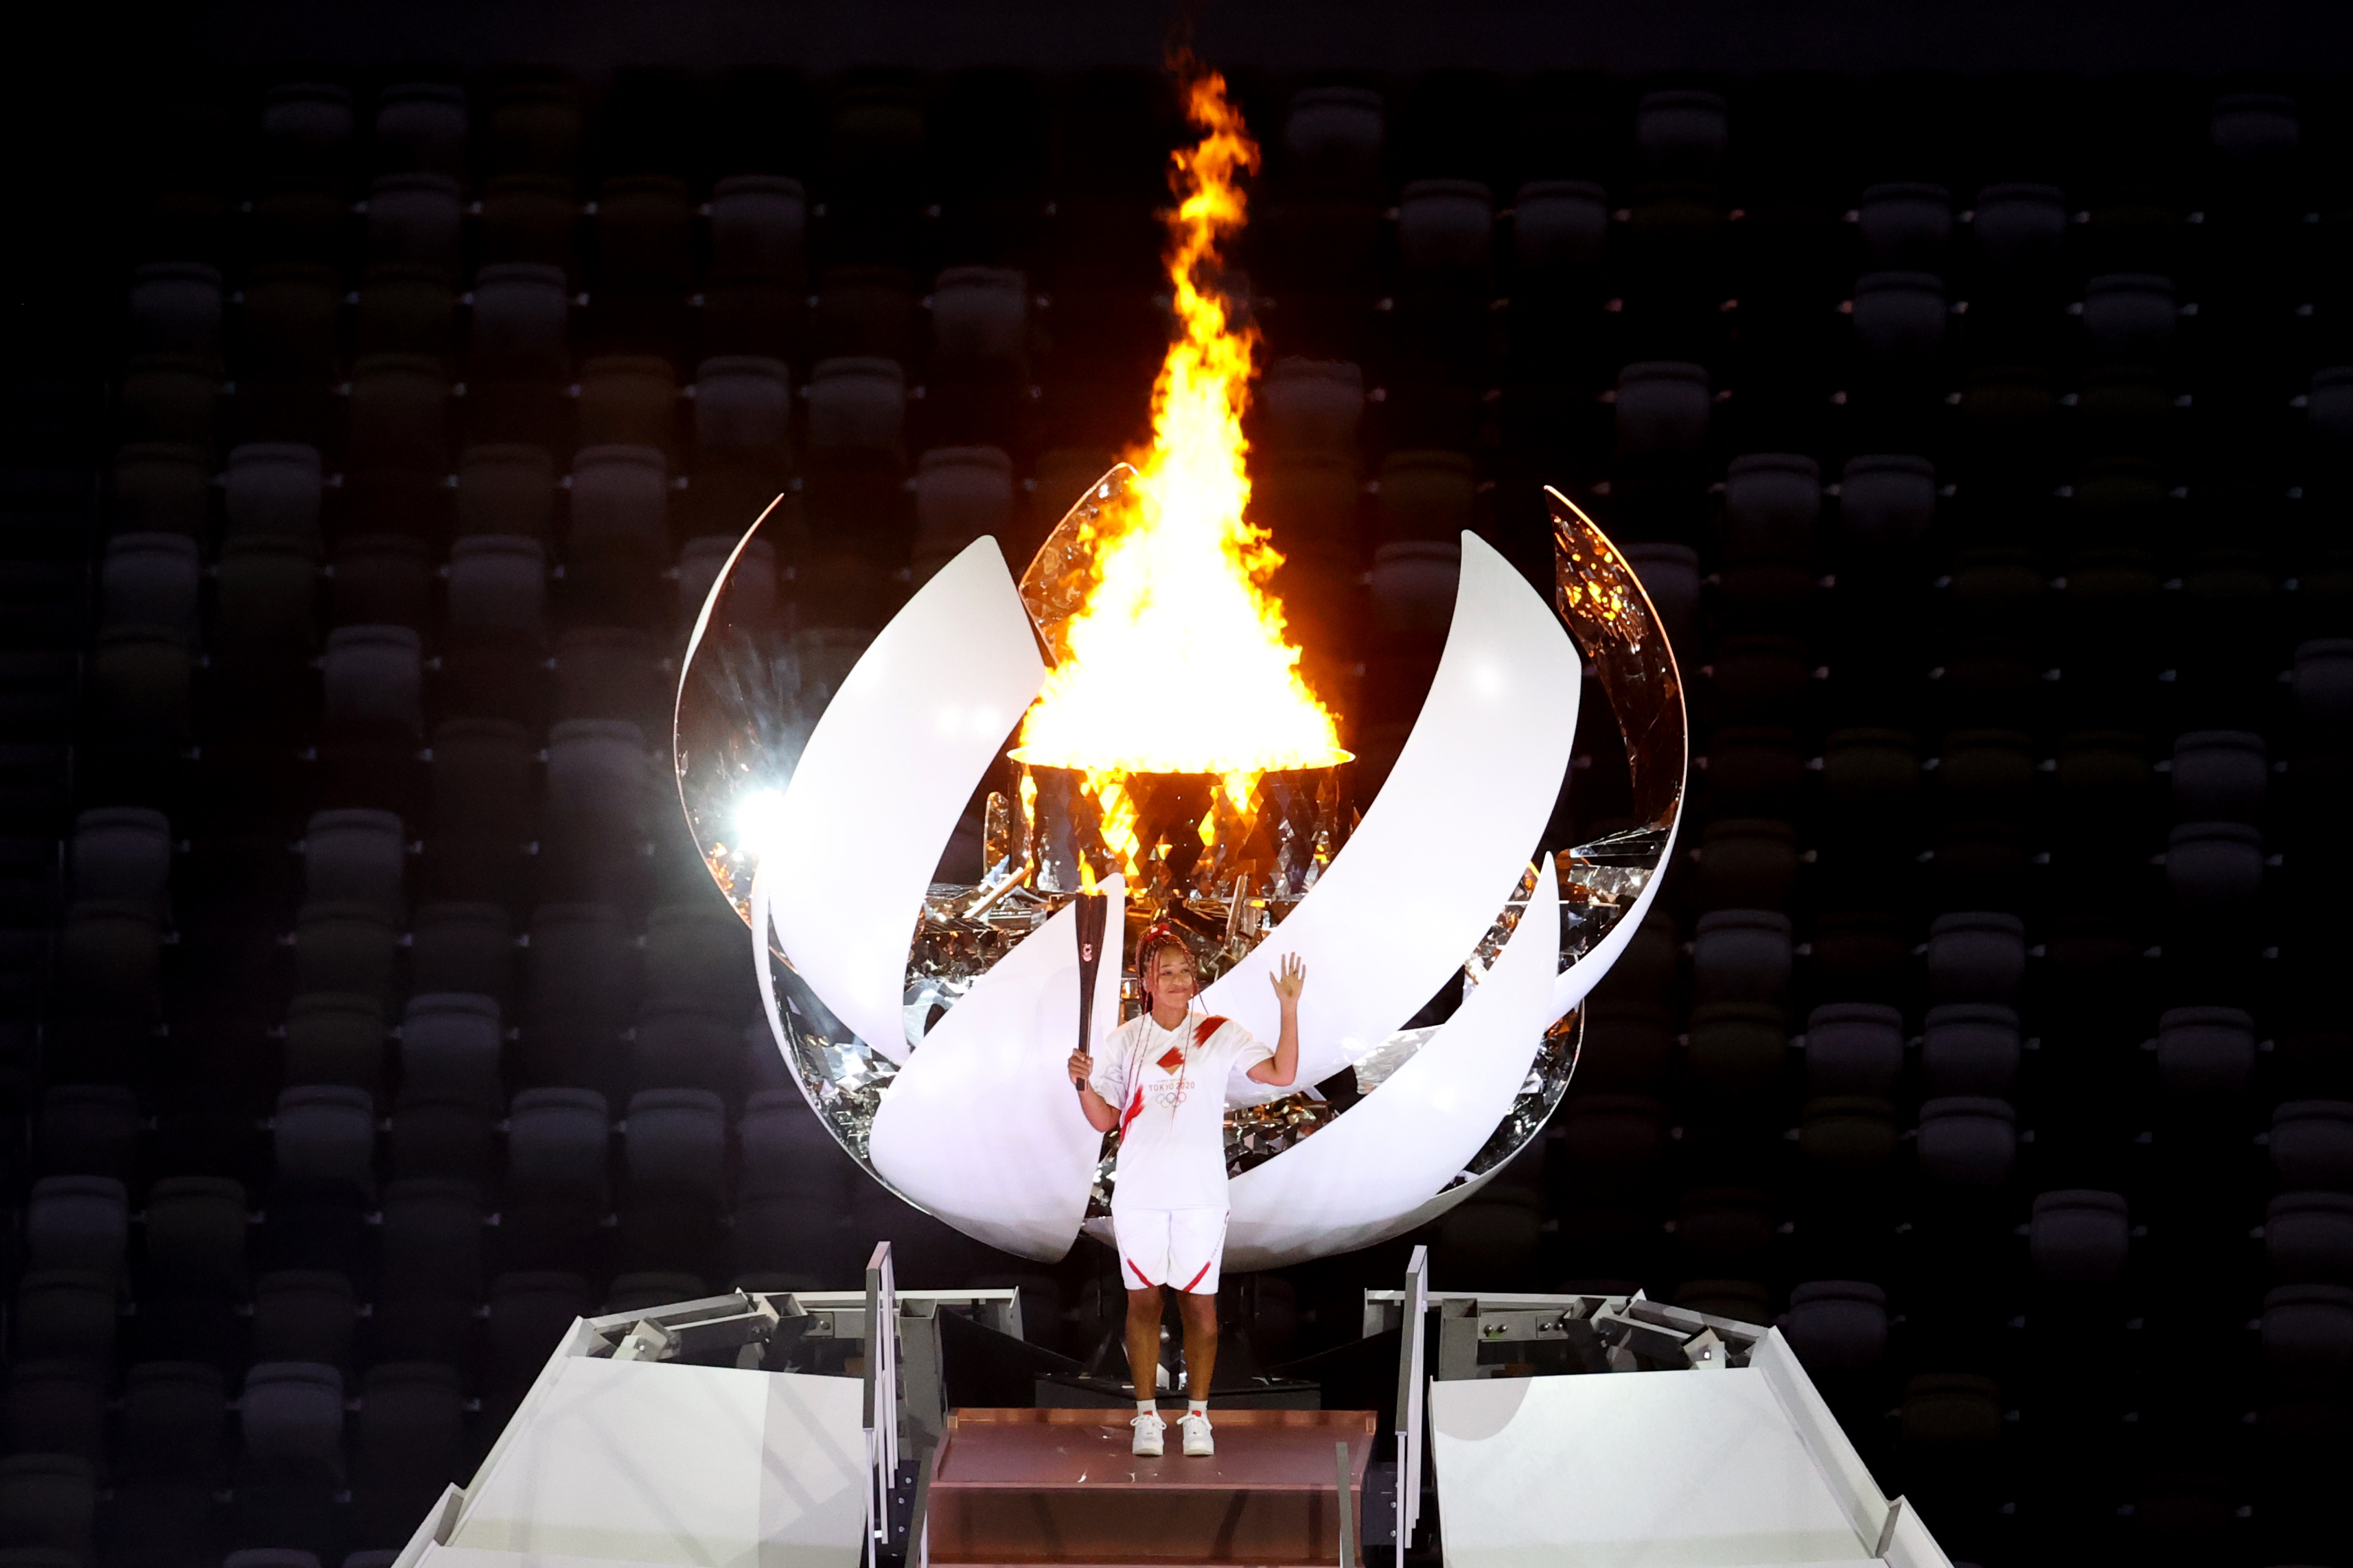 Naomi Osaka of Japan stands with the Olympic flame during the Opening Ceremony of the Tokyo 2020 Olympic Games at Olympic Stadium on July 23, 2021 in Tokyo, Japan.